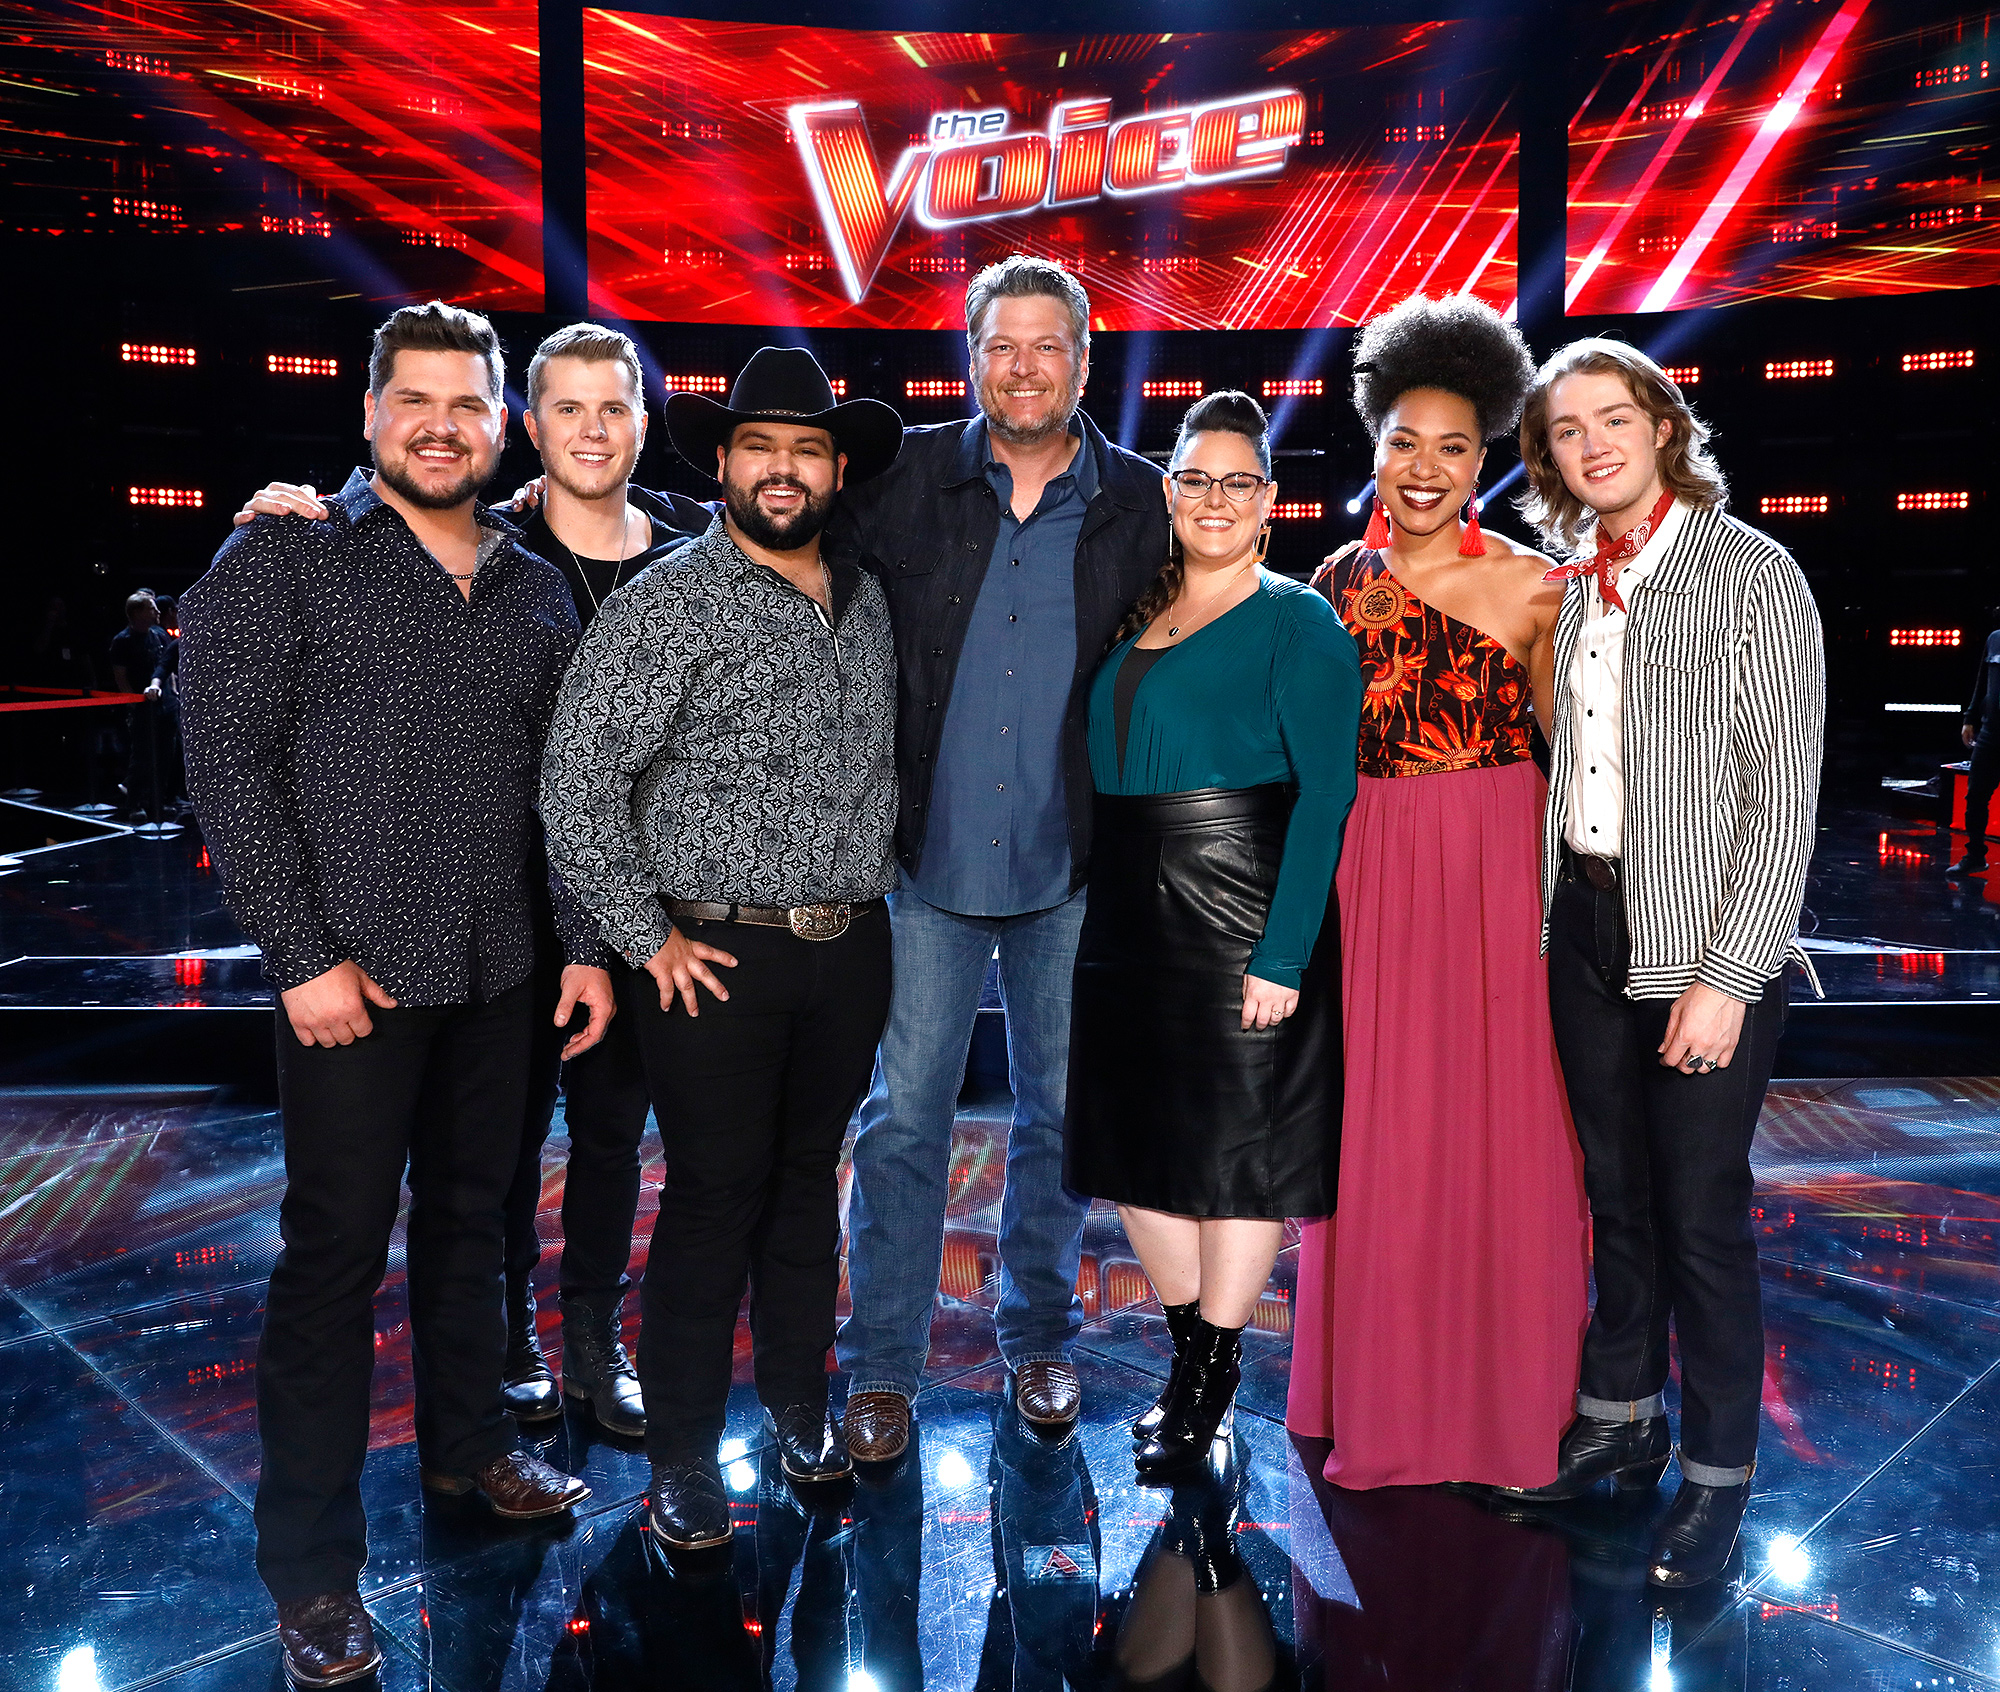 "THE VOICE -- ""Live Top 24 Results"" Episode 1613B -- Pictured: (l-r) Dexter Roberts, Gyth Rigdon, Andrew Sevener, Blake Shelton, Kim Cherry, Oliv Blu, Carter Lloyd Horne -- (Photo by: Trae Patton/NBC)"